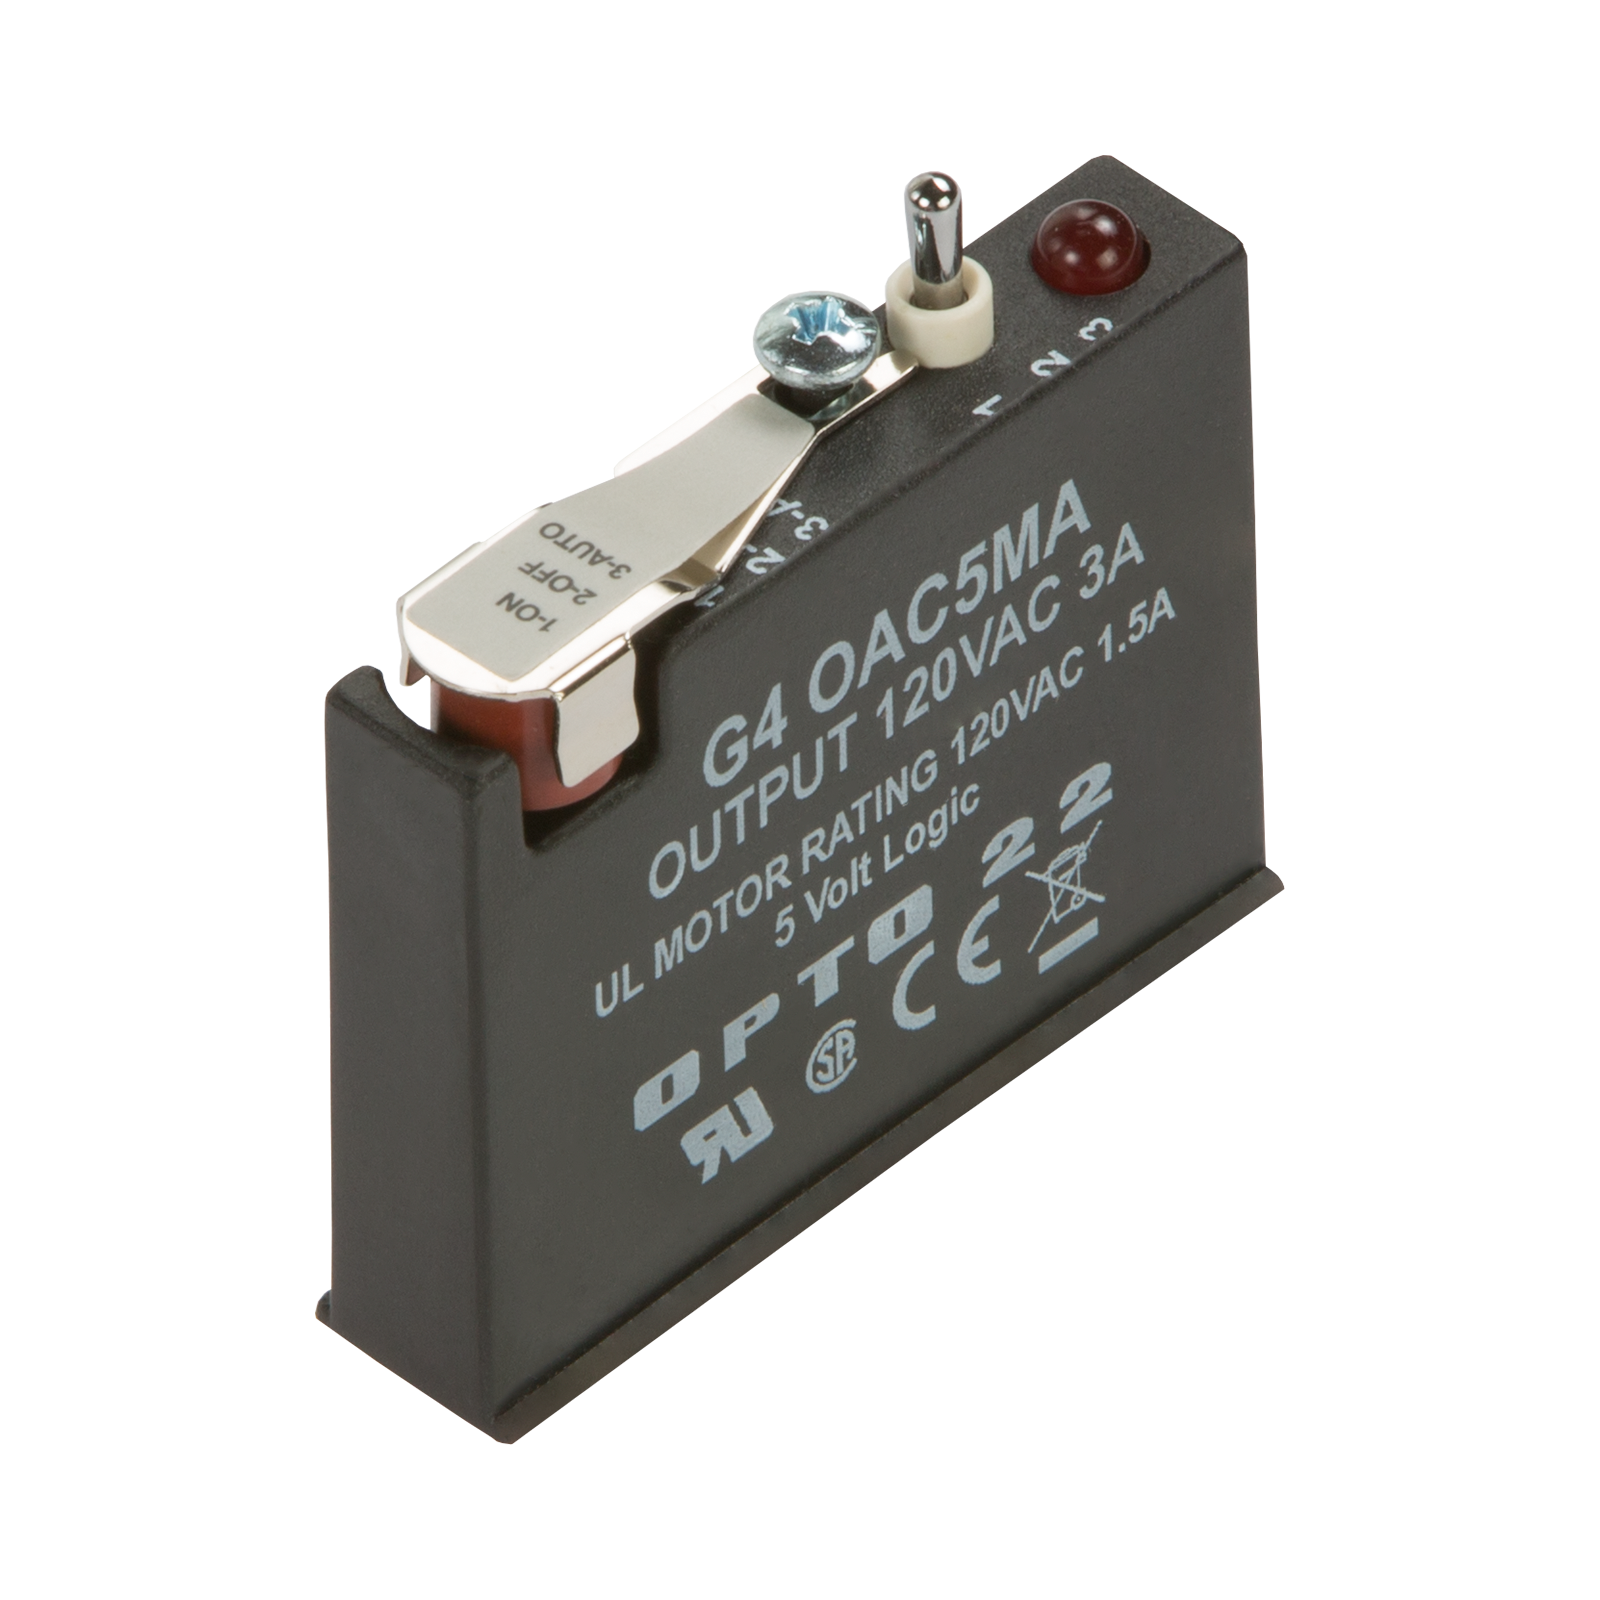 Opto 22 Wiring Diagram Database Solid State Relay Z240d10 Opto22 G4oac5ma G4 Ac Output 12 140 Vac 5 Vdc Logic With Manual